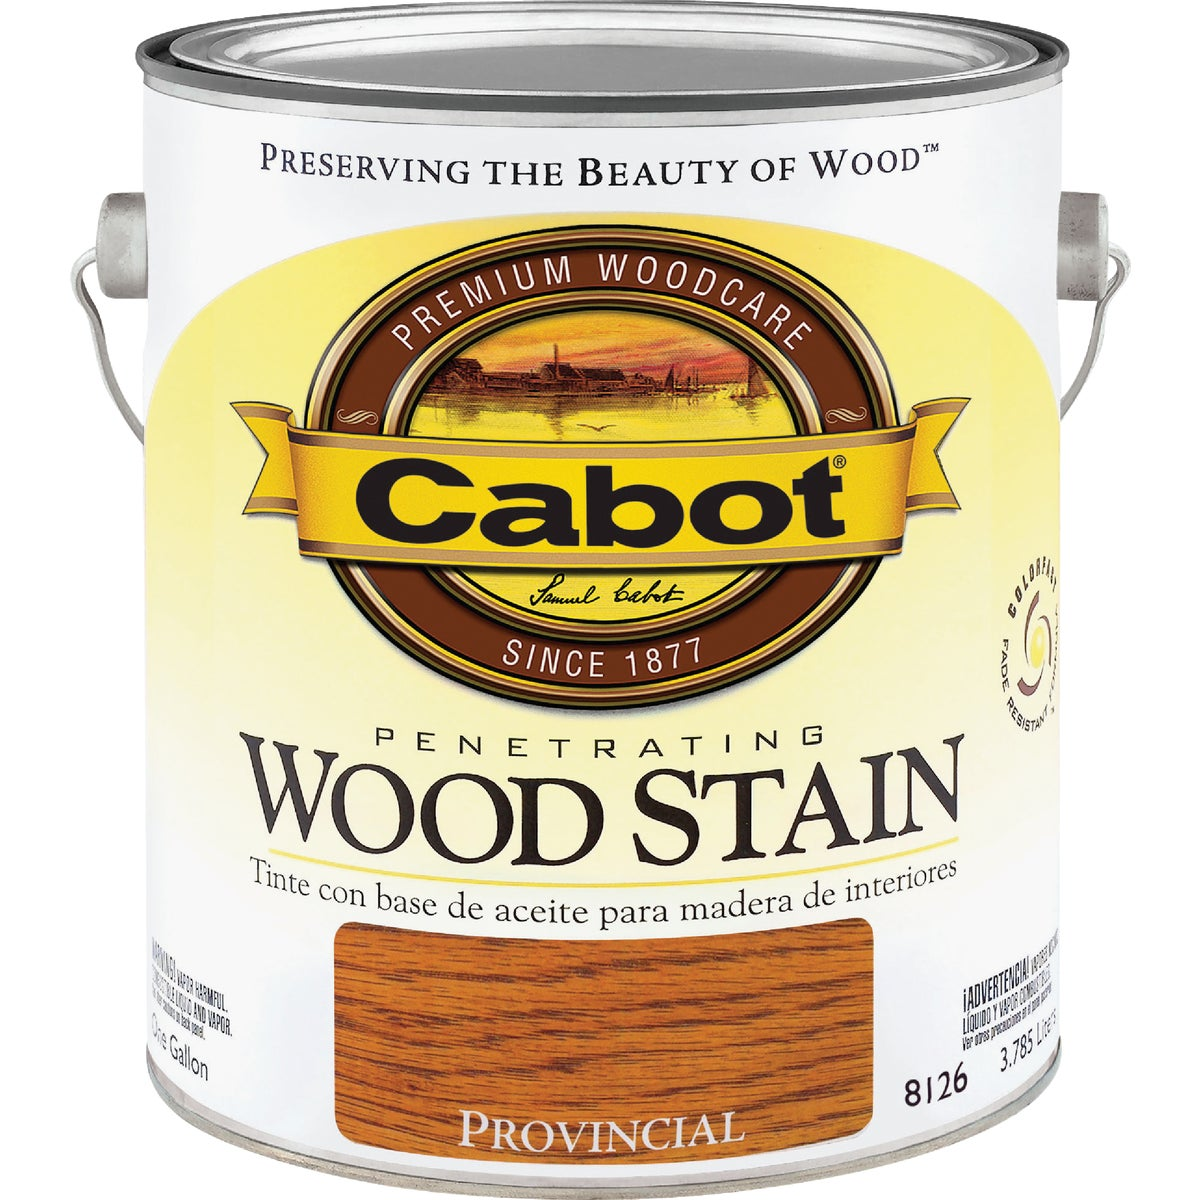 INT PROVNCIAL WOOD STAIN - 144.0008126.007 by Valspar Corp